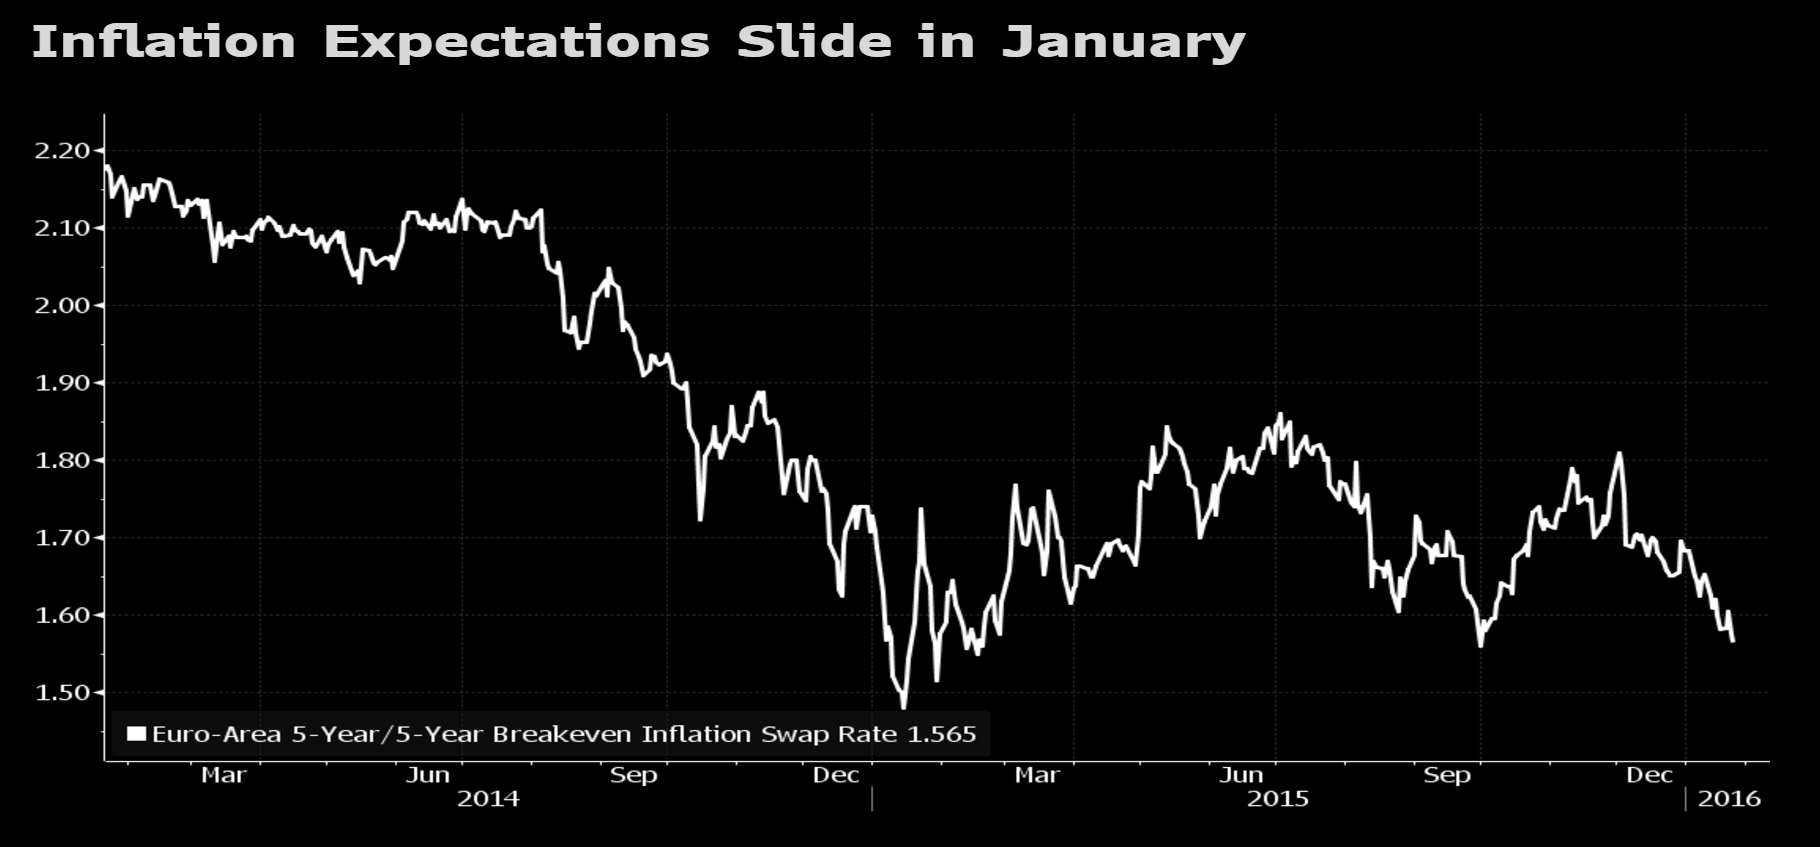 inflation-expectations-2016